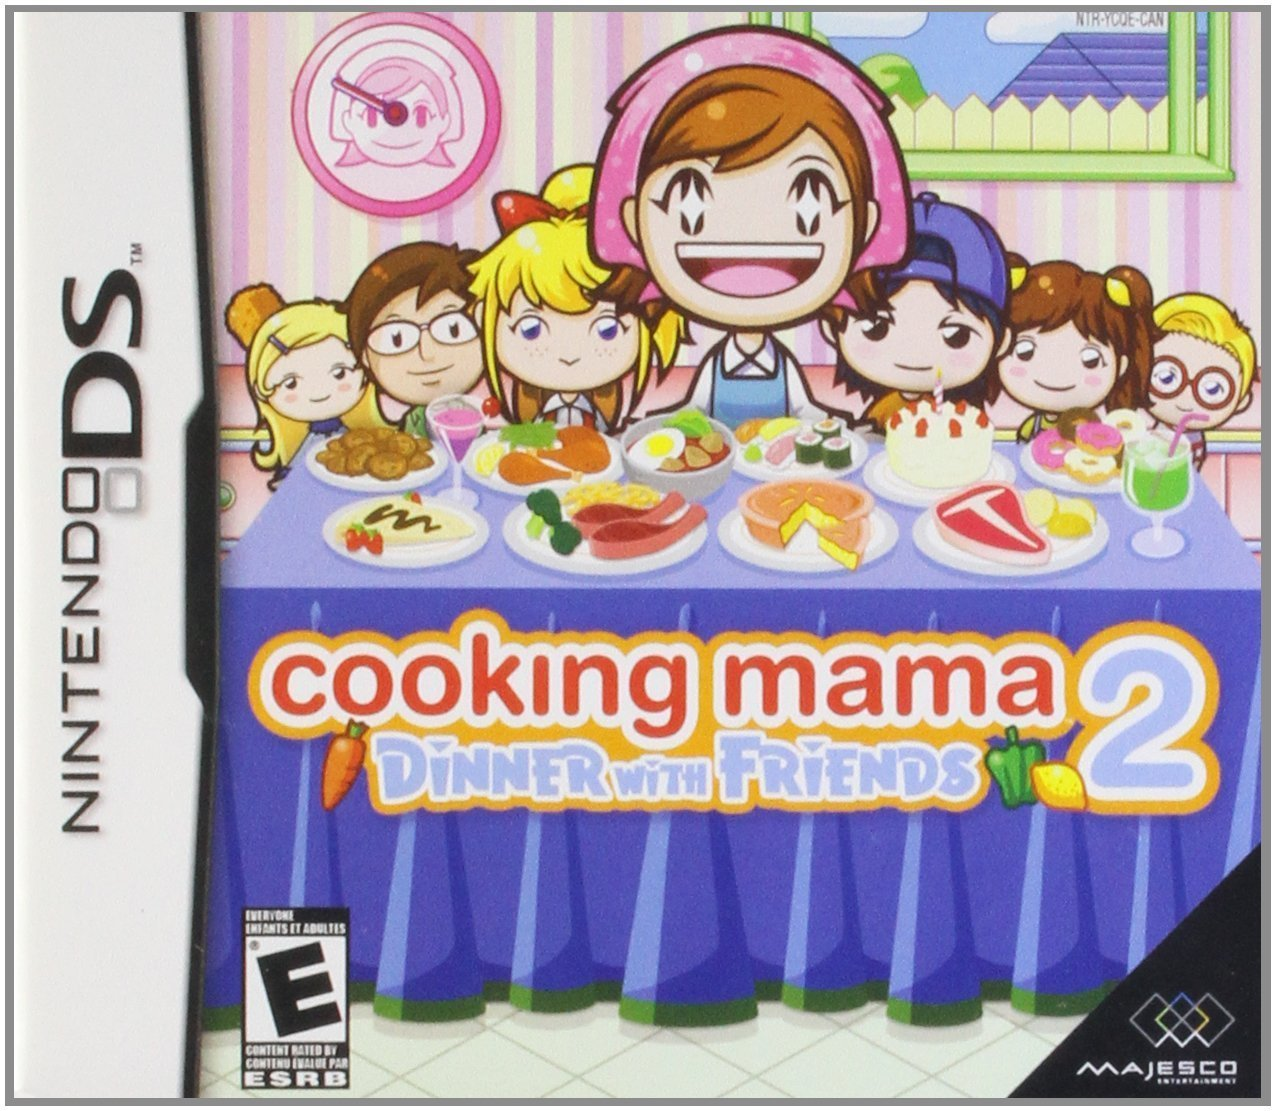 Game cooking mama 3 nintendo ds download.